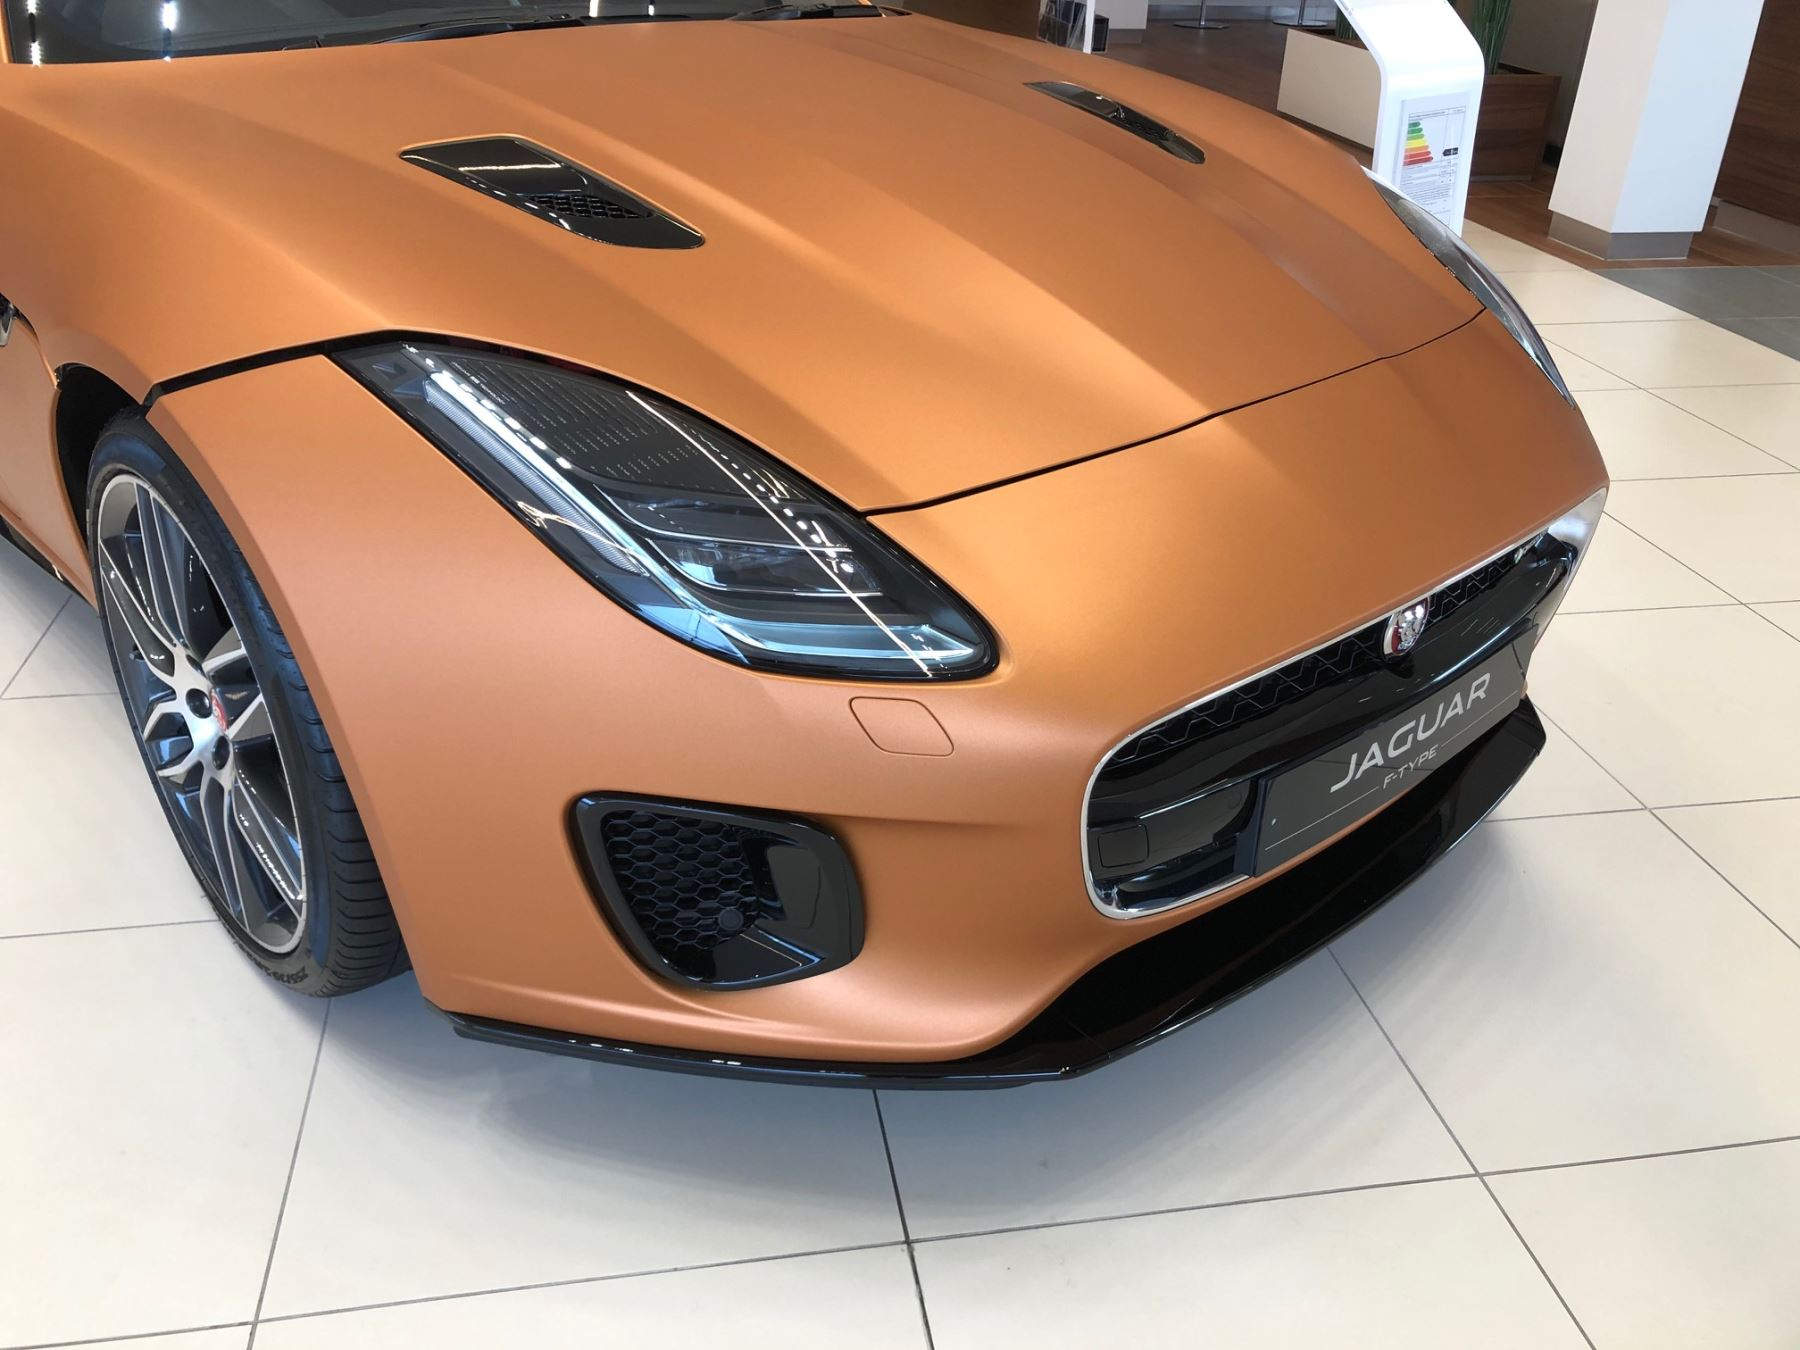 Jaguar F-TYPE 3.0 380 Supercharged V6 R-Dynamic AWD image 6